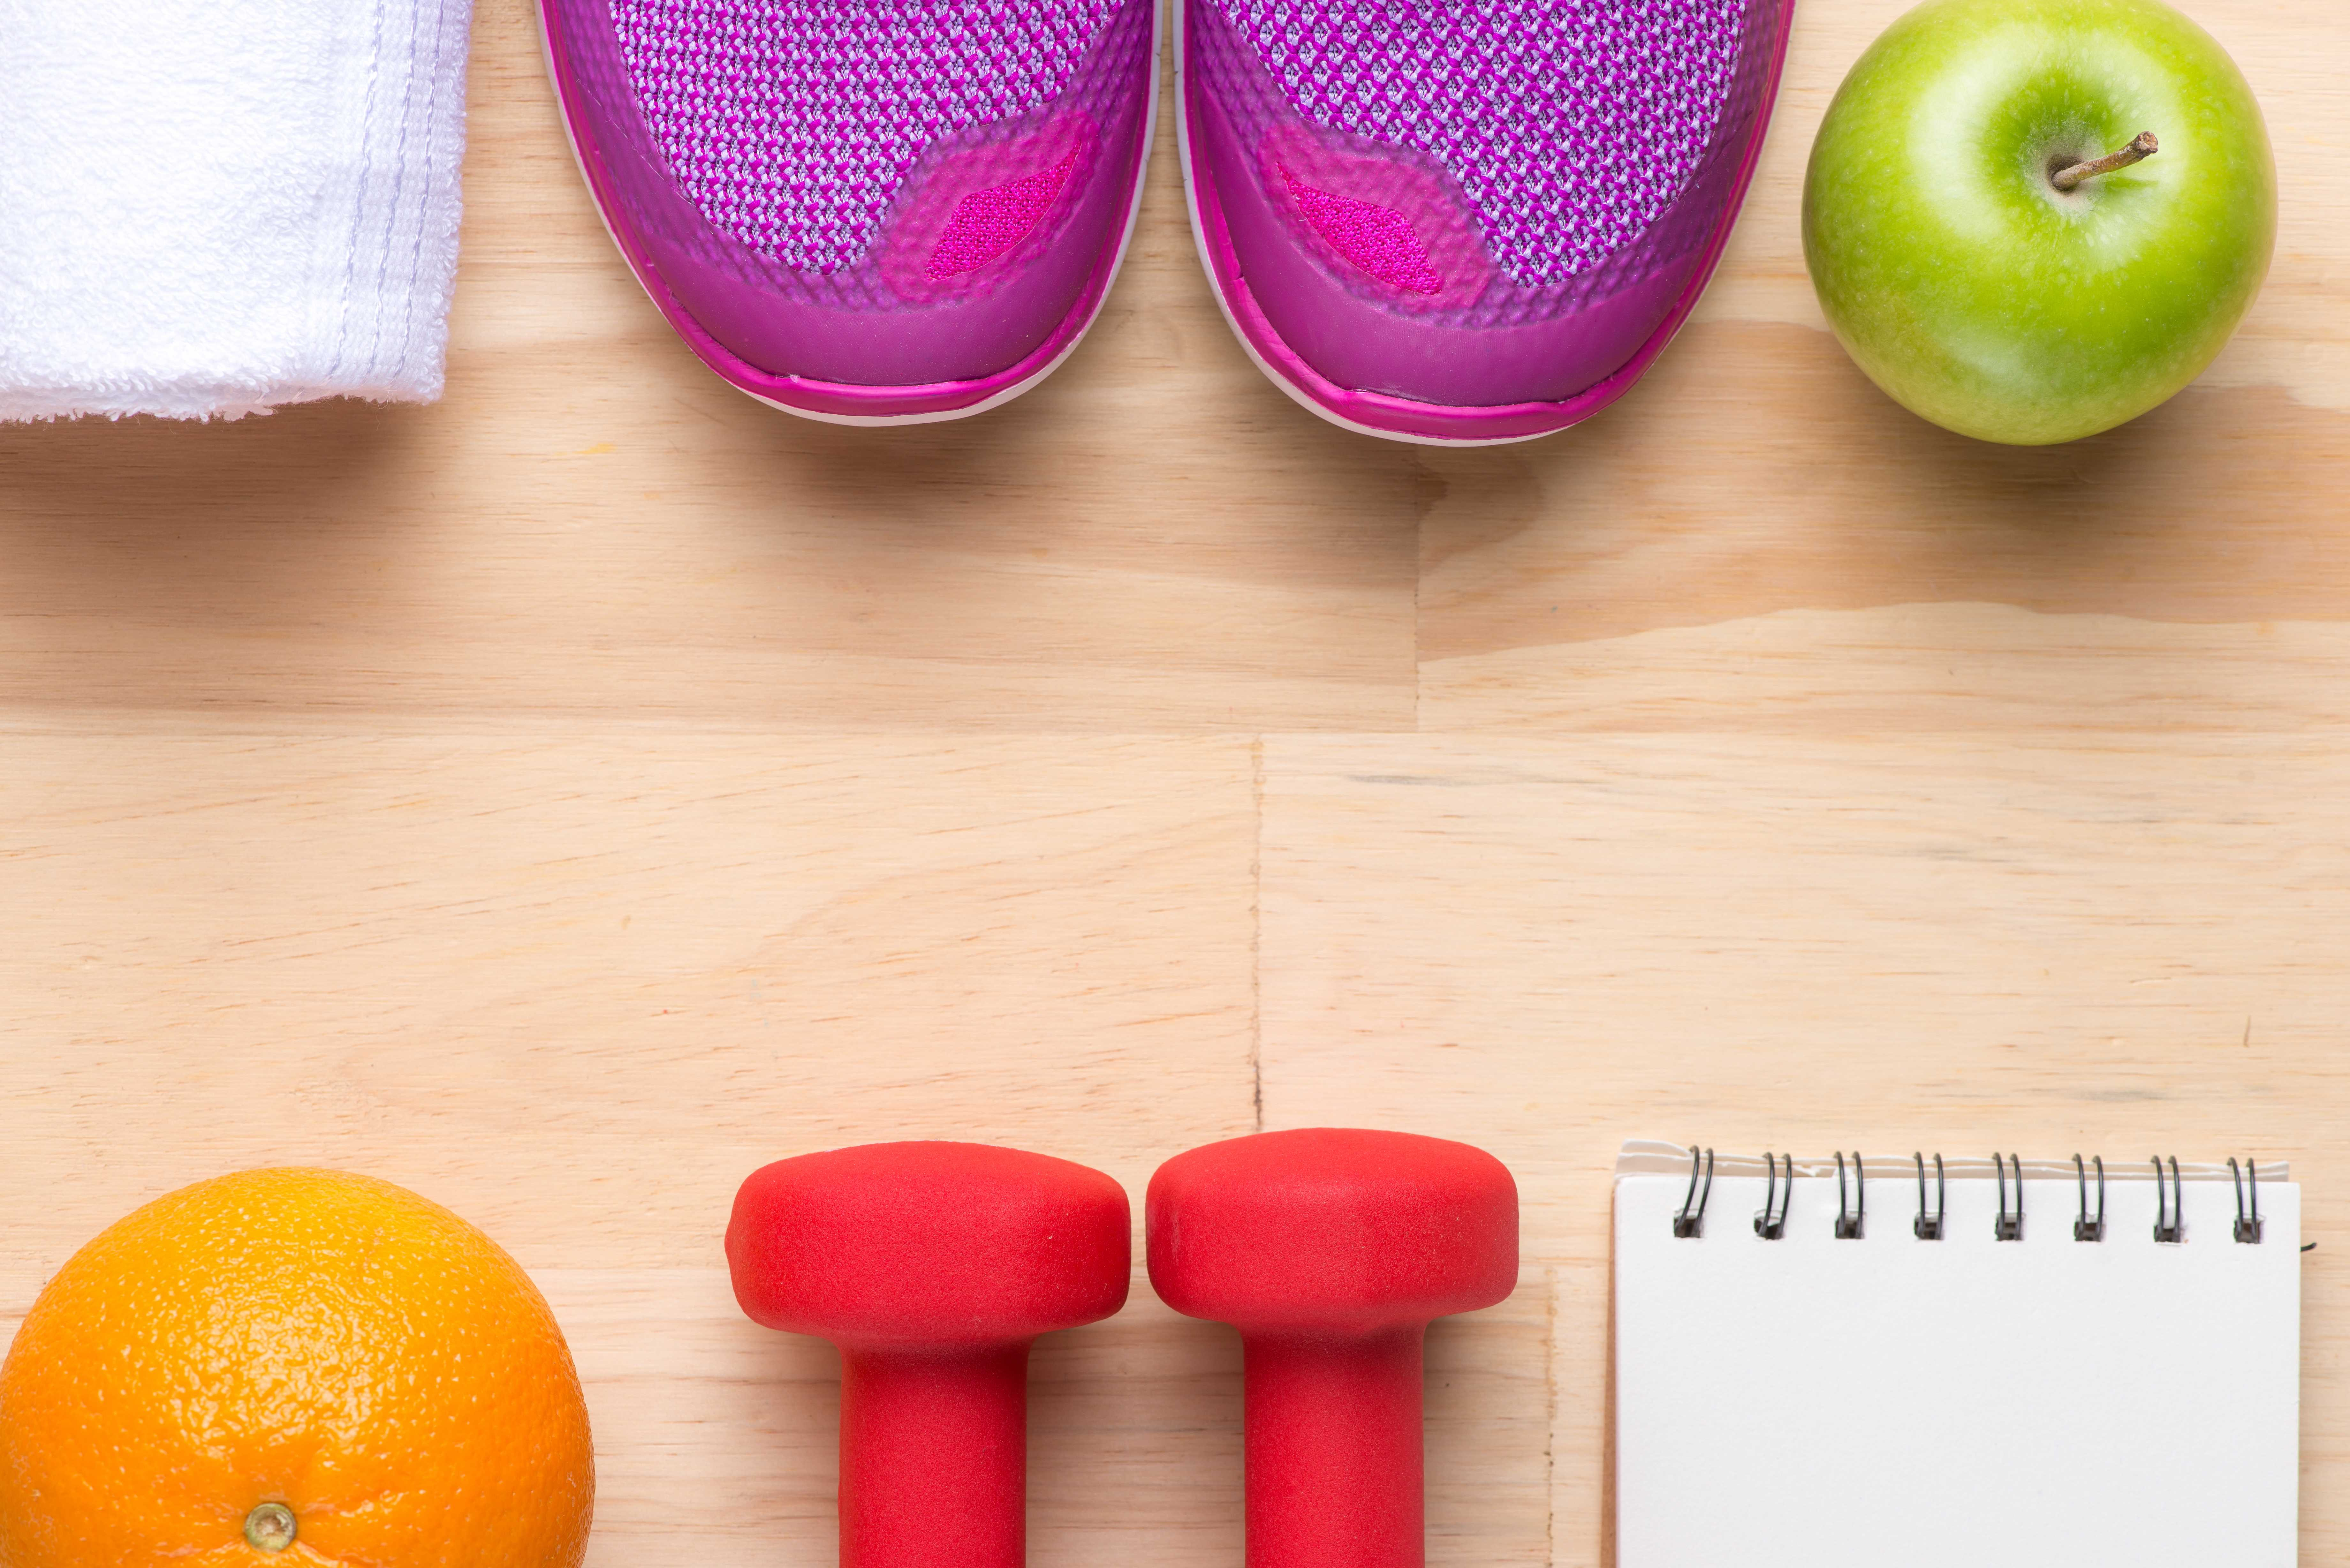 Wellness programs evolving to mental and financial health